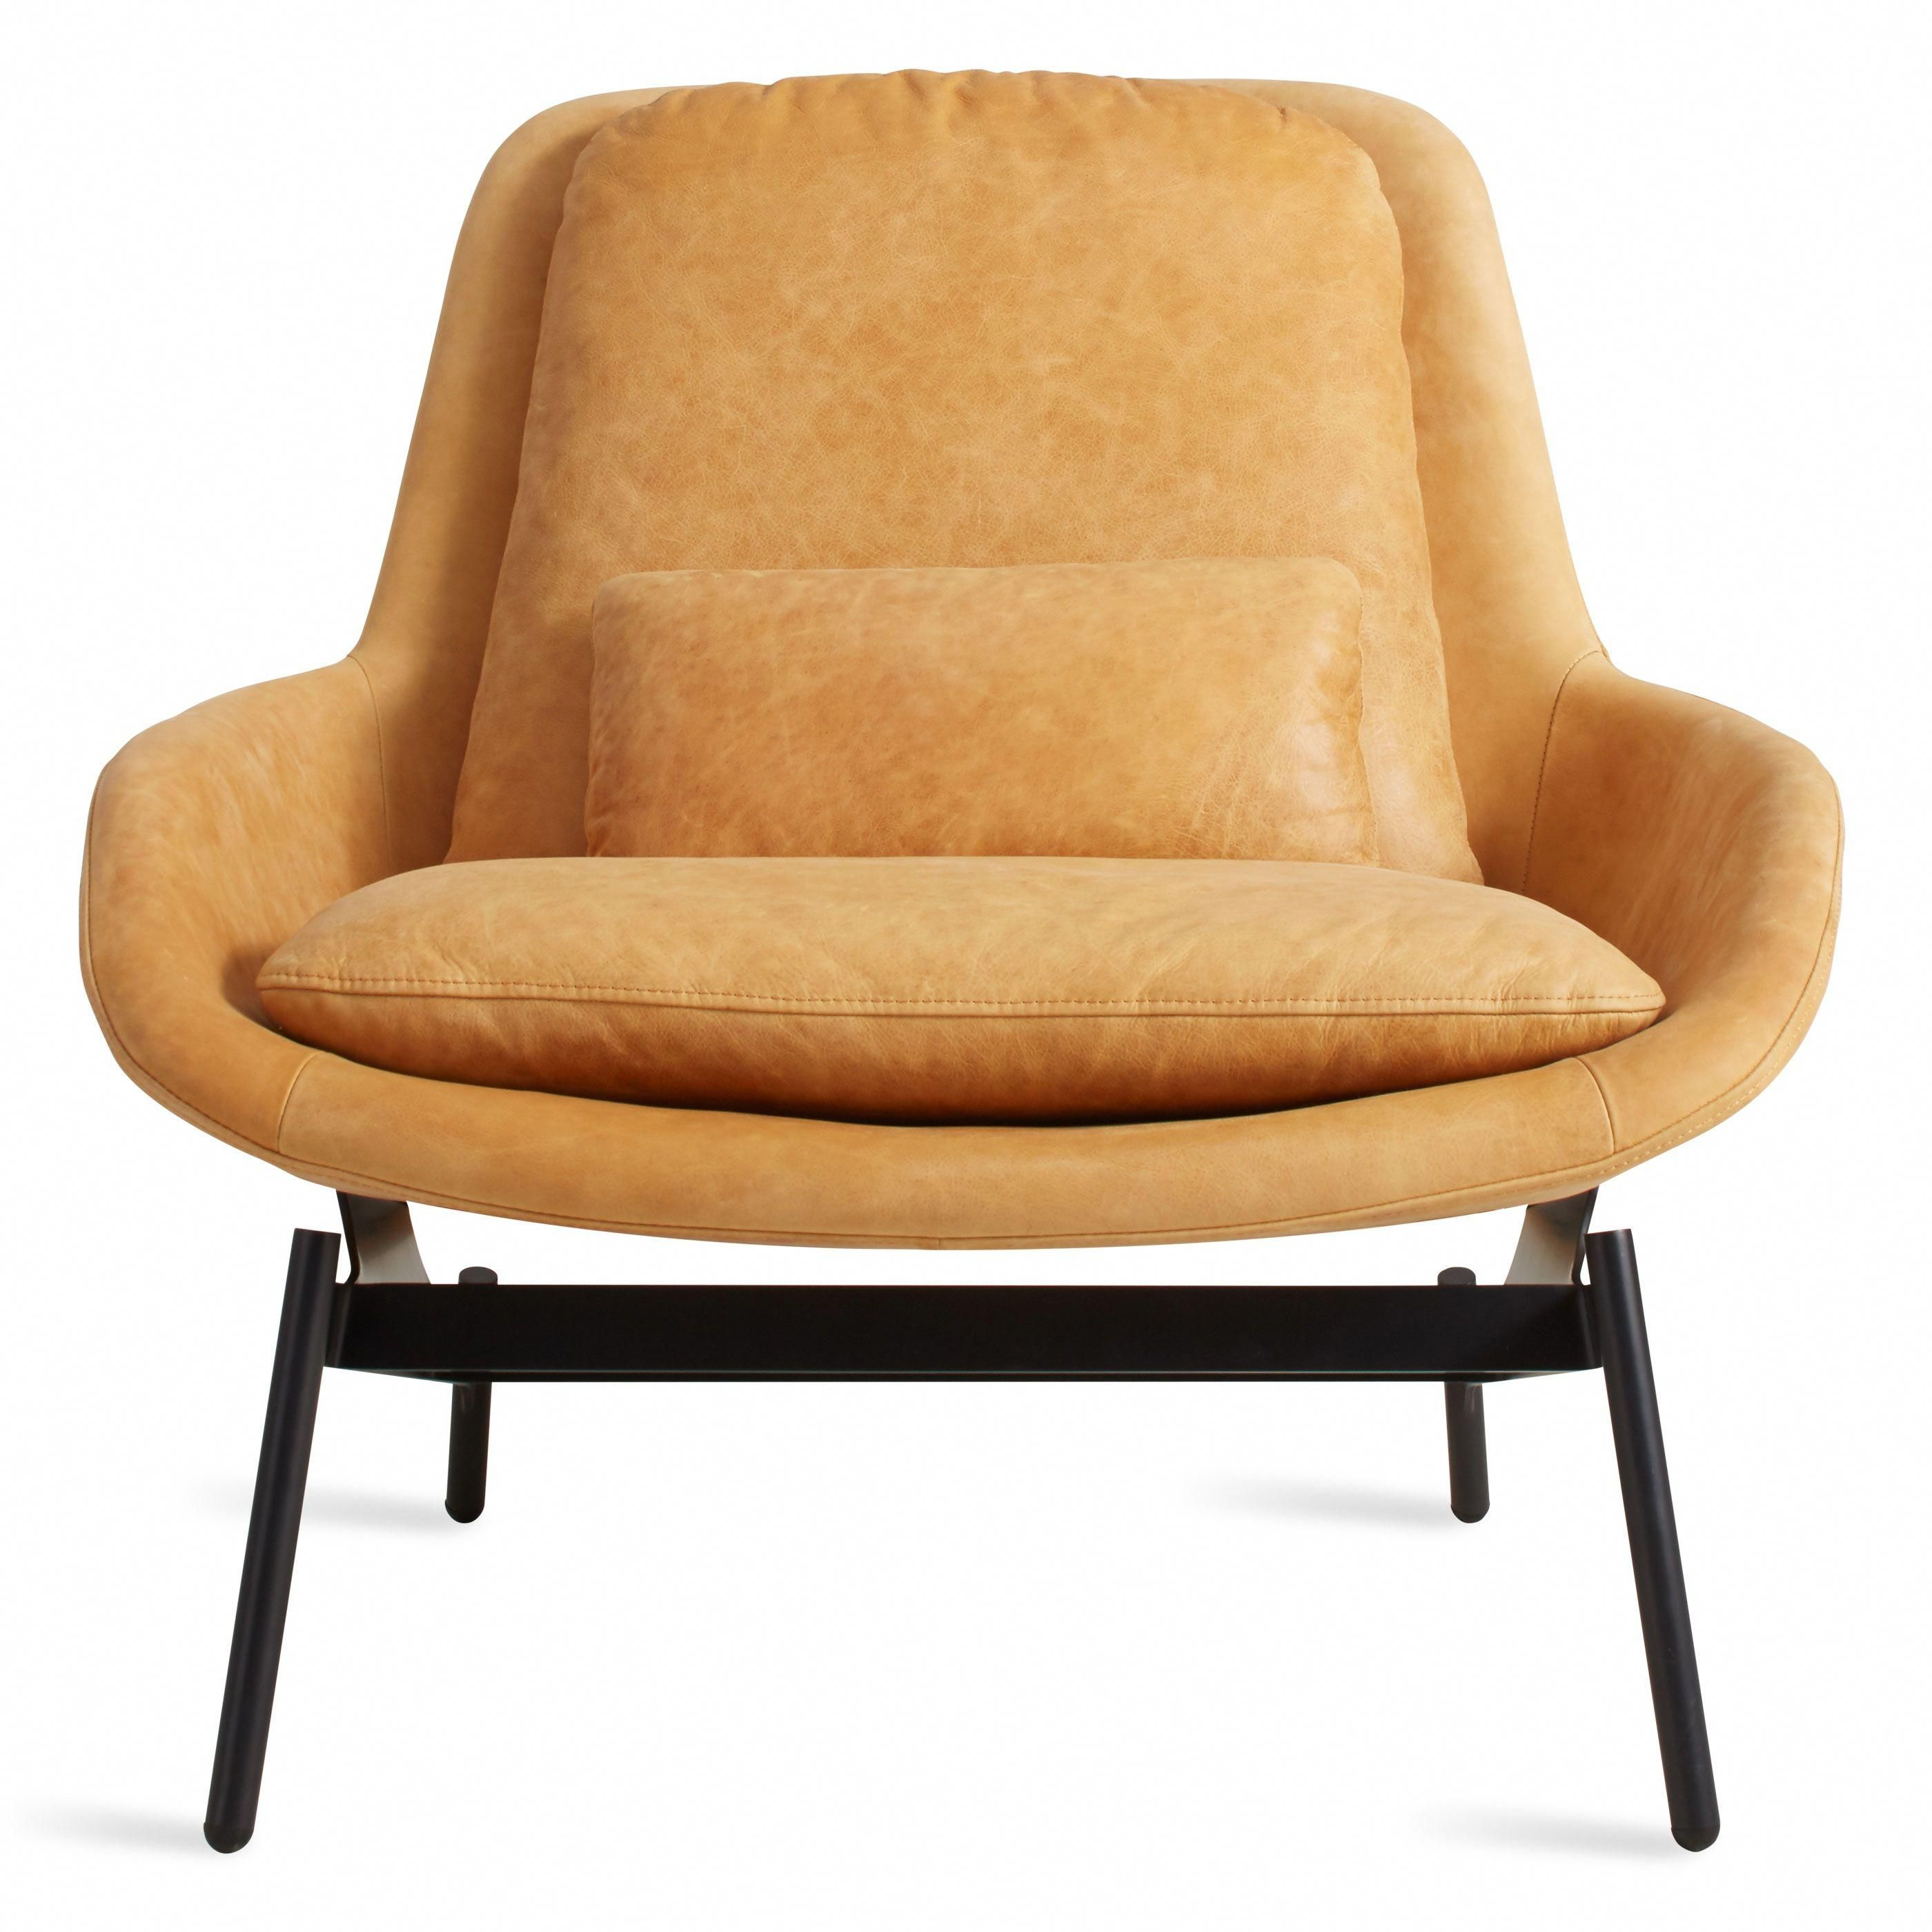 Field Leather Lounge Chair Leather Lounge Chair Modern Lounge Chairs Modern Leather Chair